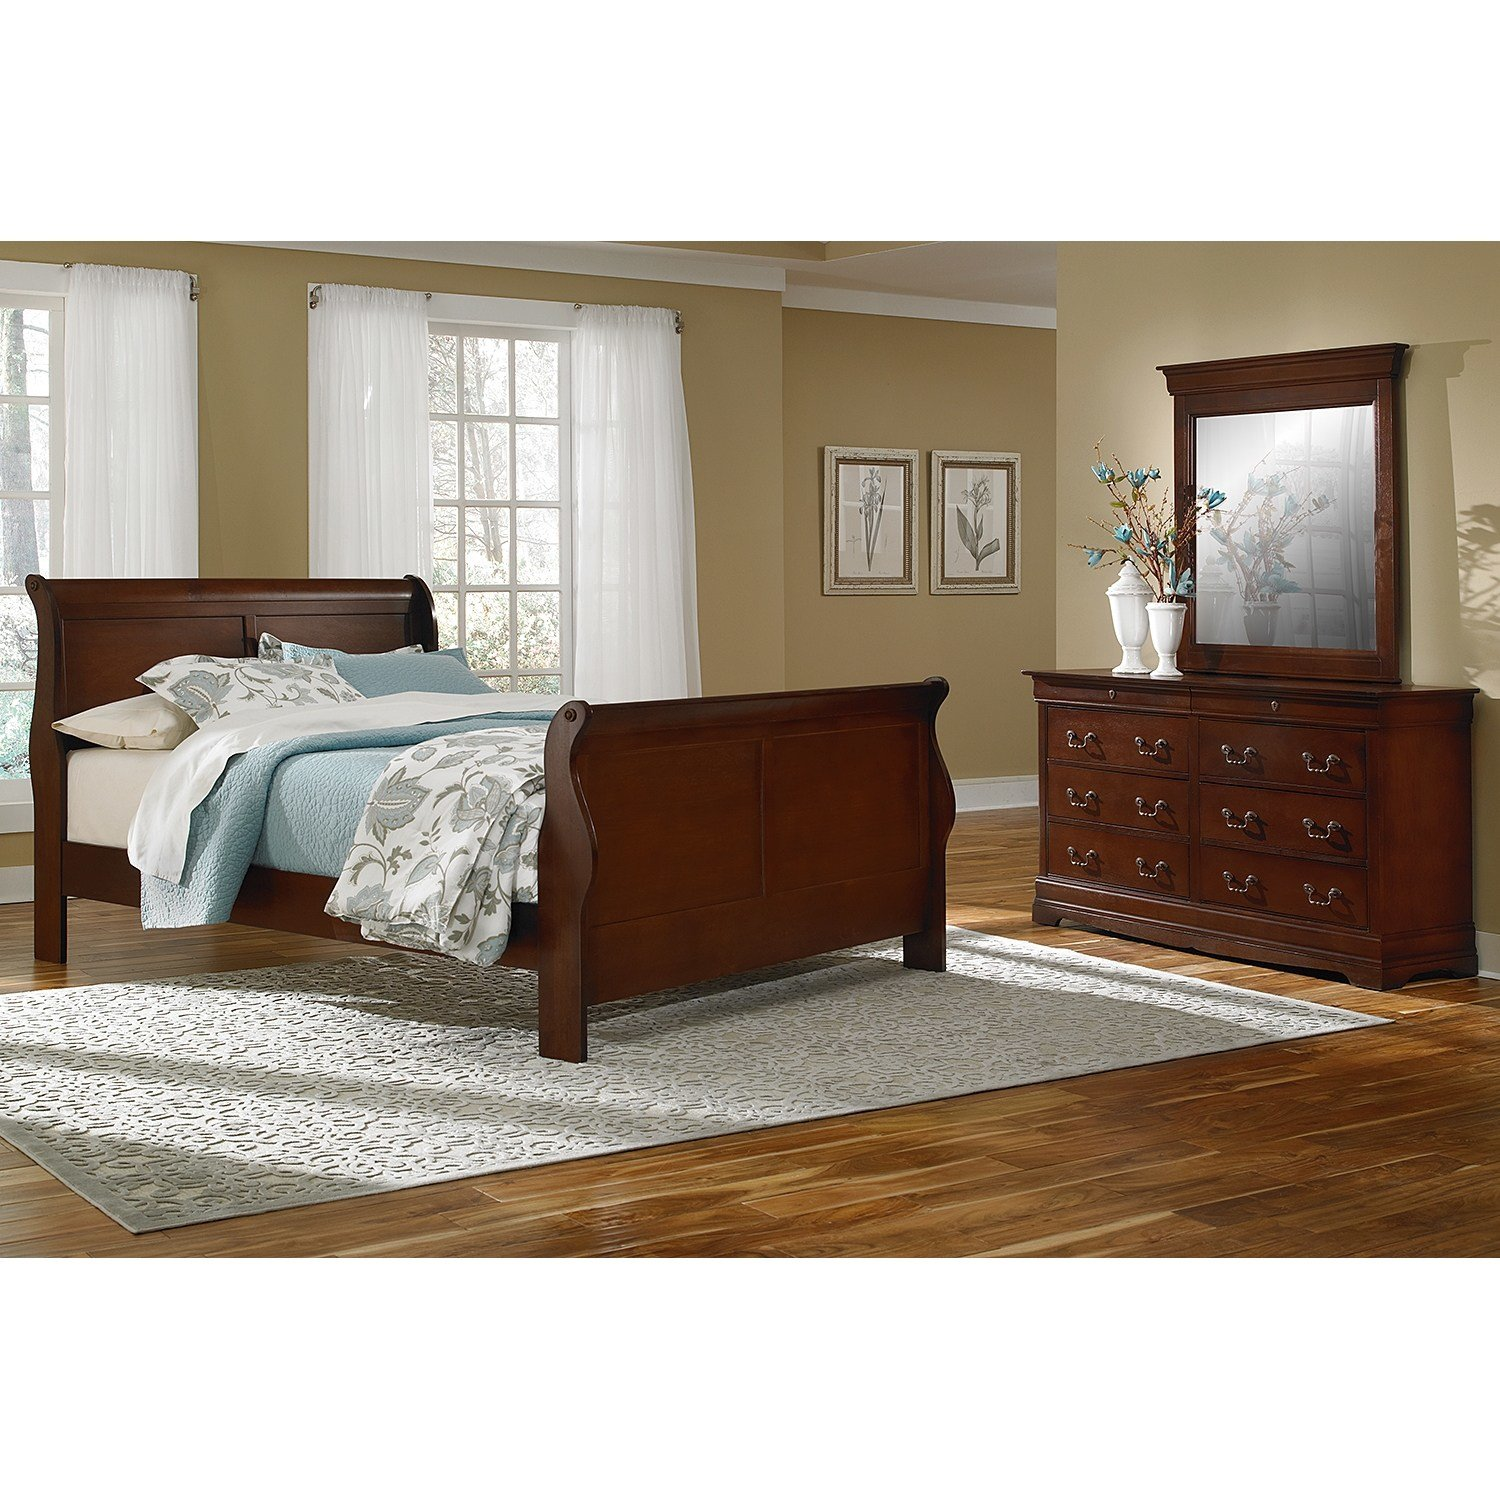 Best Neo Classic Cherry Bedroom 5 Pc King Bedroom Value City With Pictures